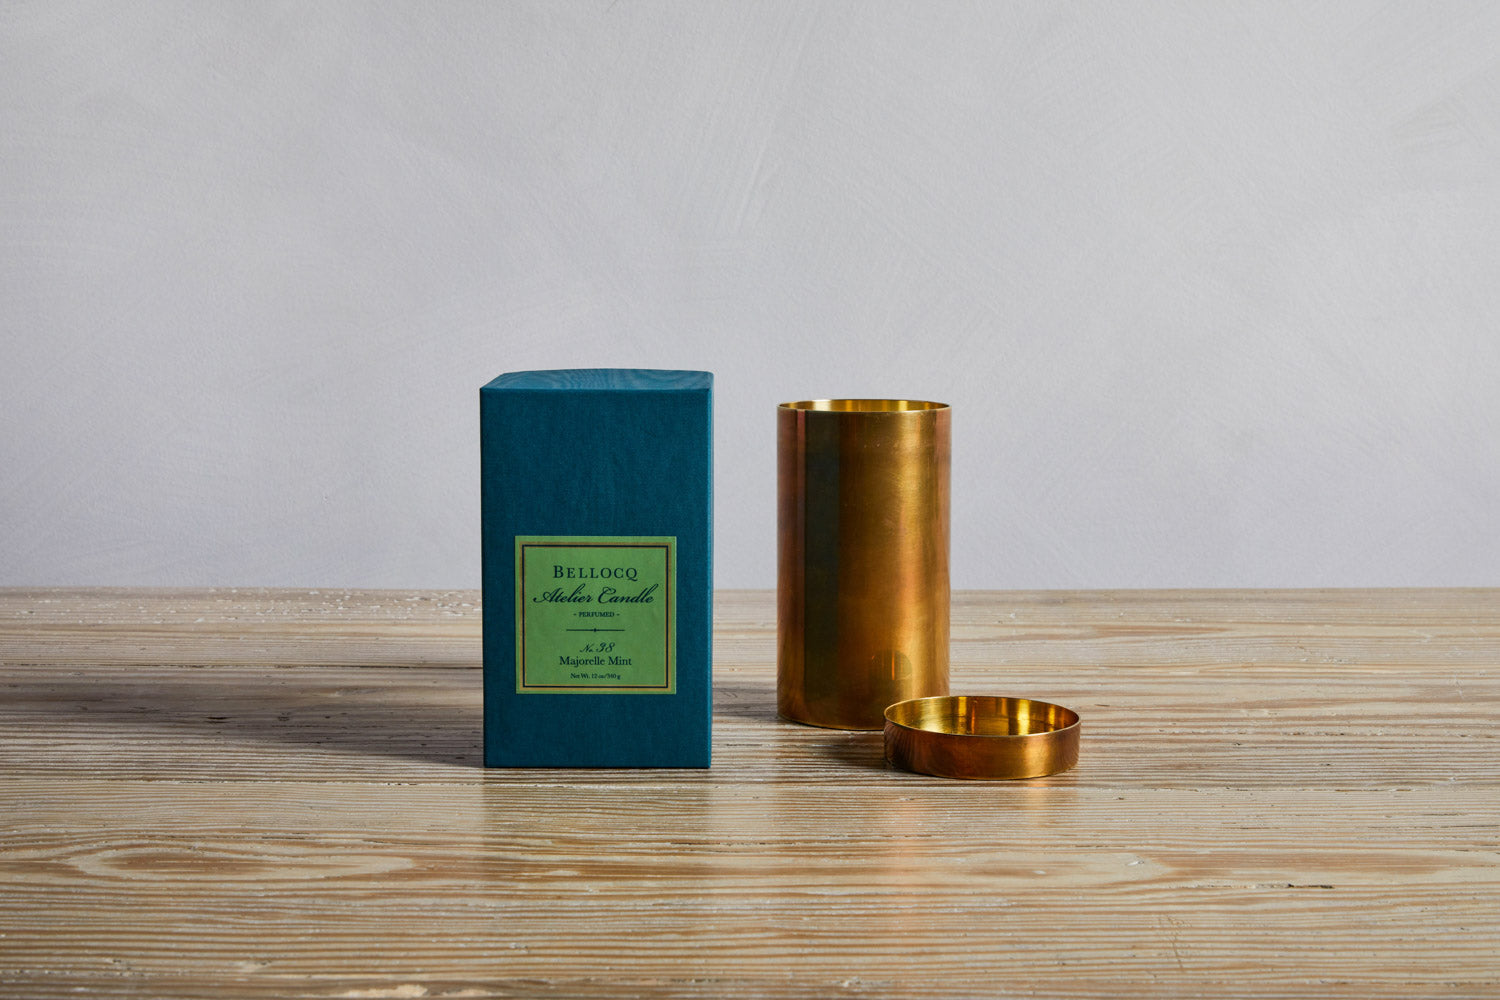 One Bellocq Atelier Majorelle Mint Candle and box.